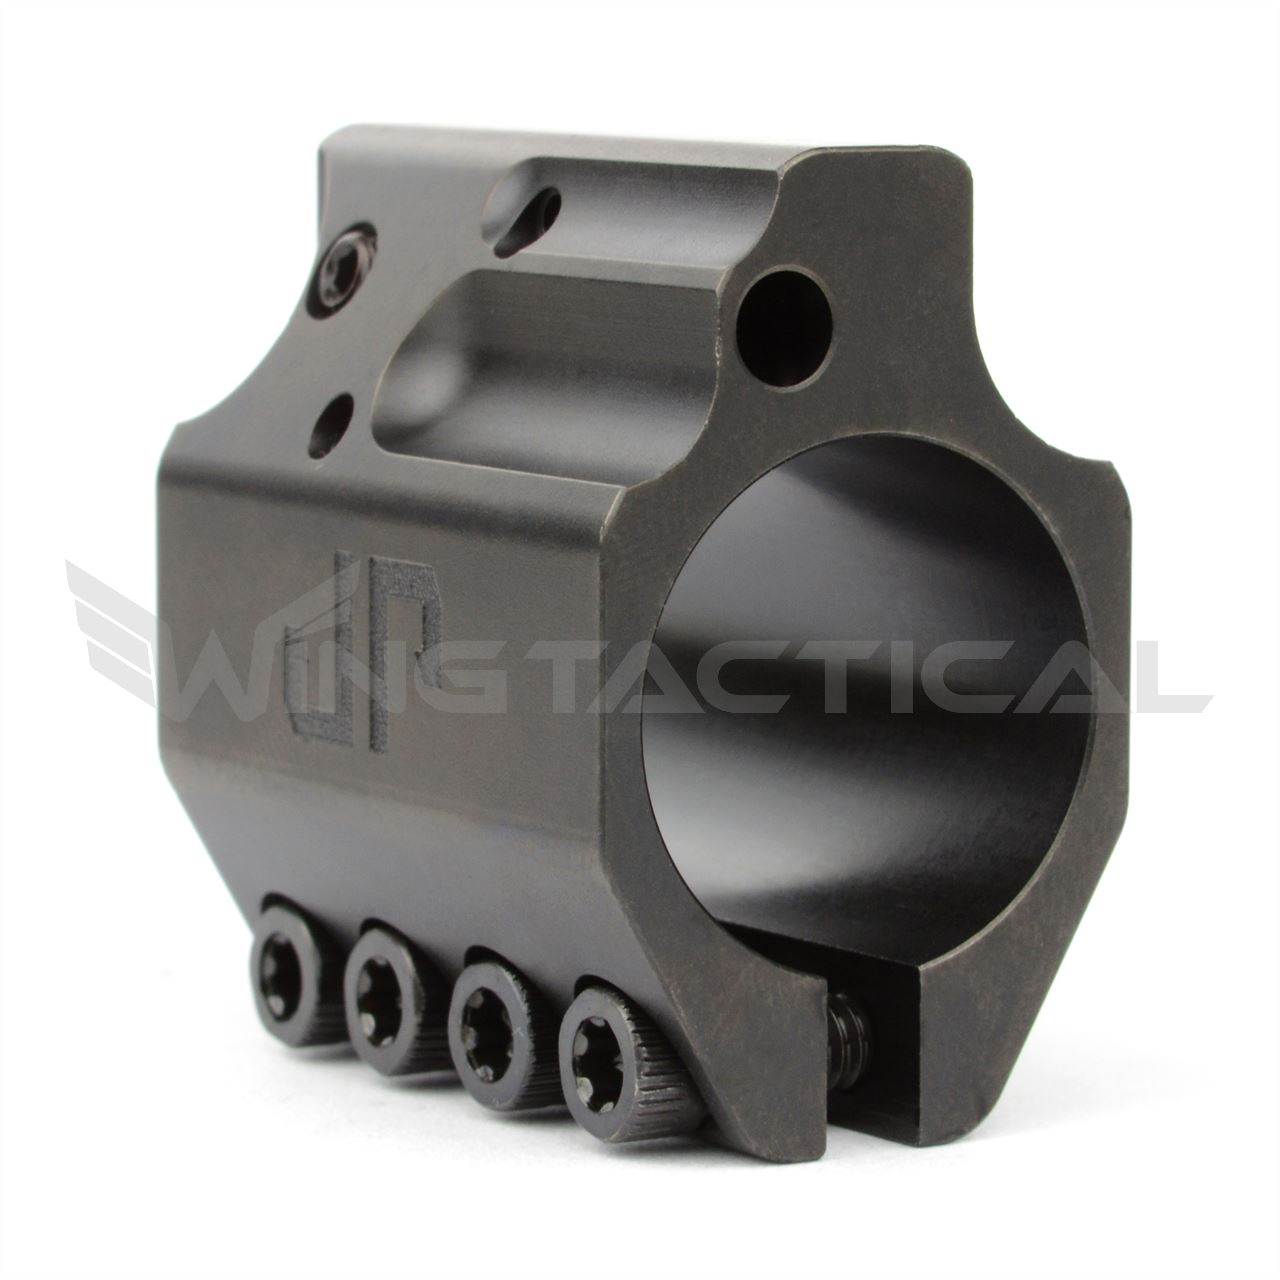 JP Enterprises .750 Adjustable Gas Block in QPQ Black Finish